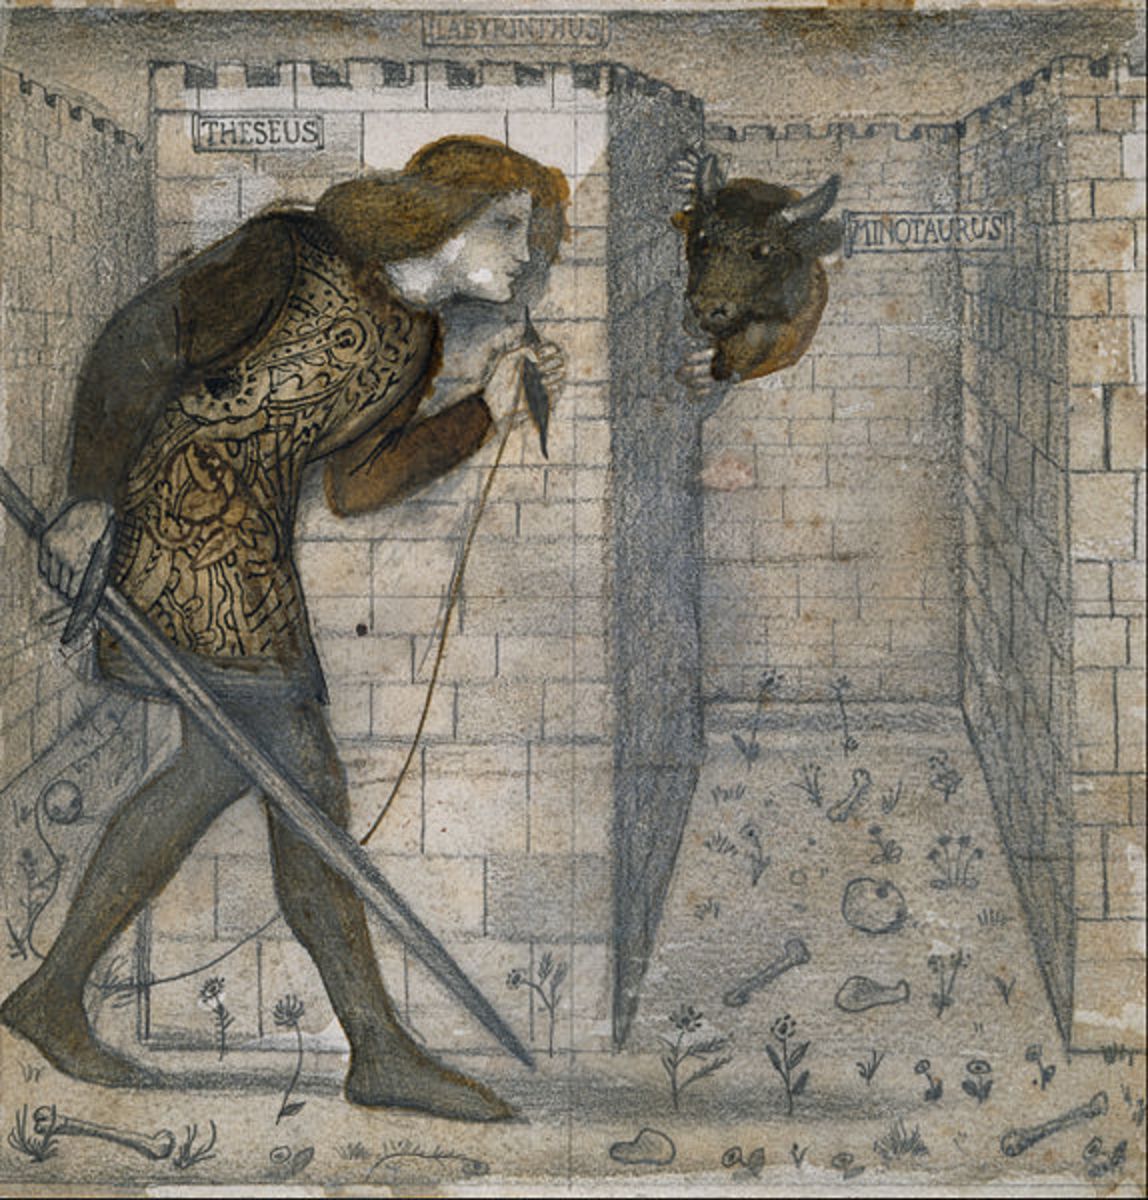 Theseus and the Minotaur in the Labyrinth, Edward Burne-Jones, 1861